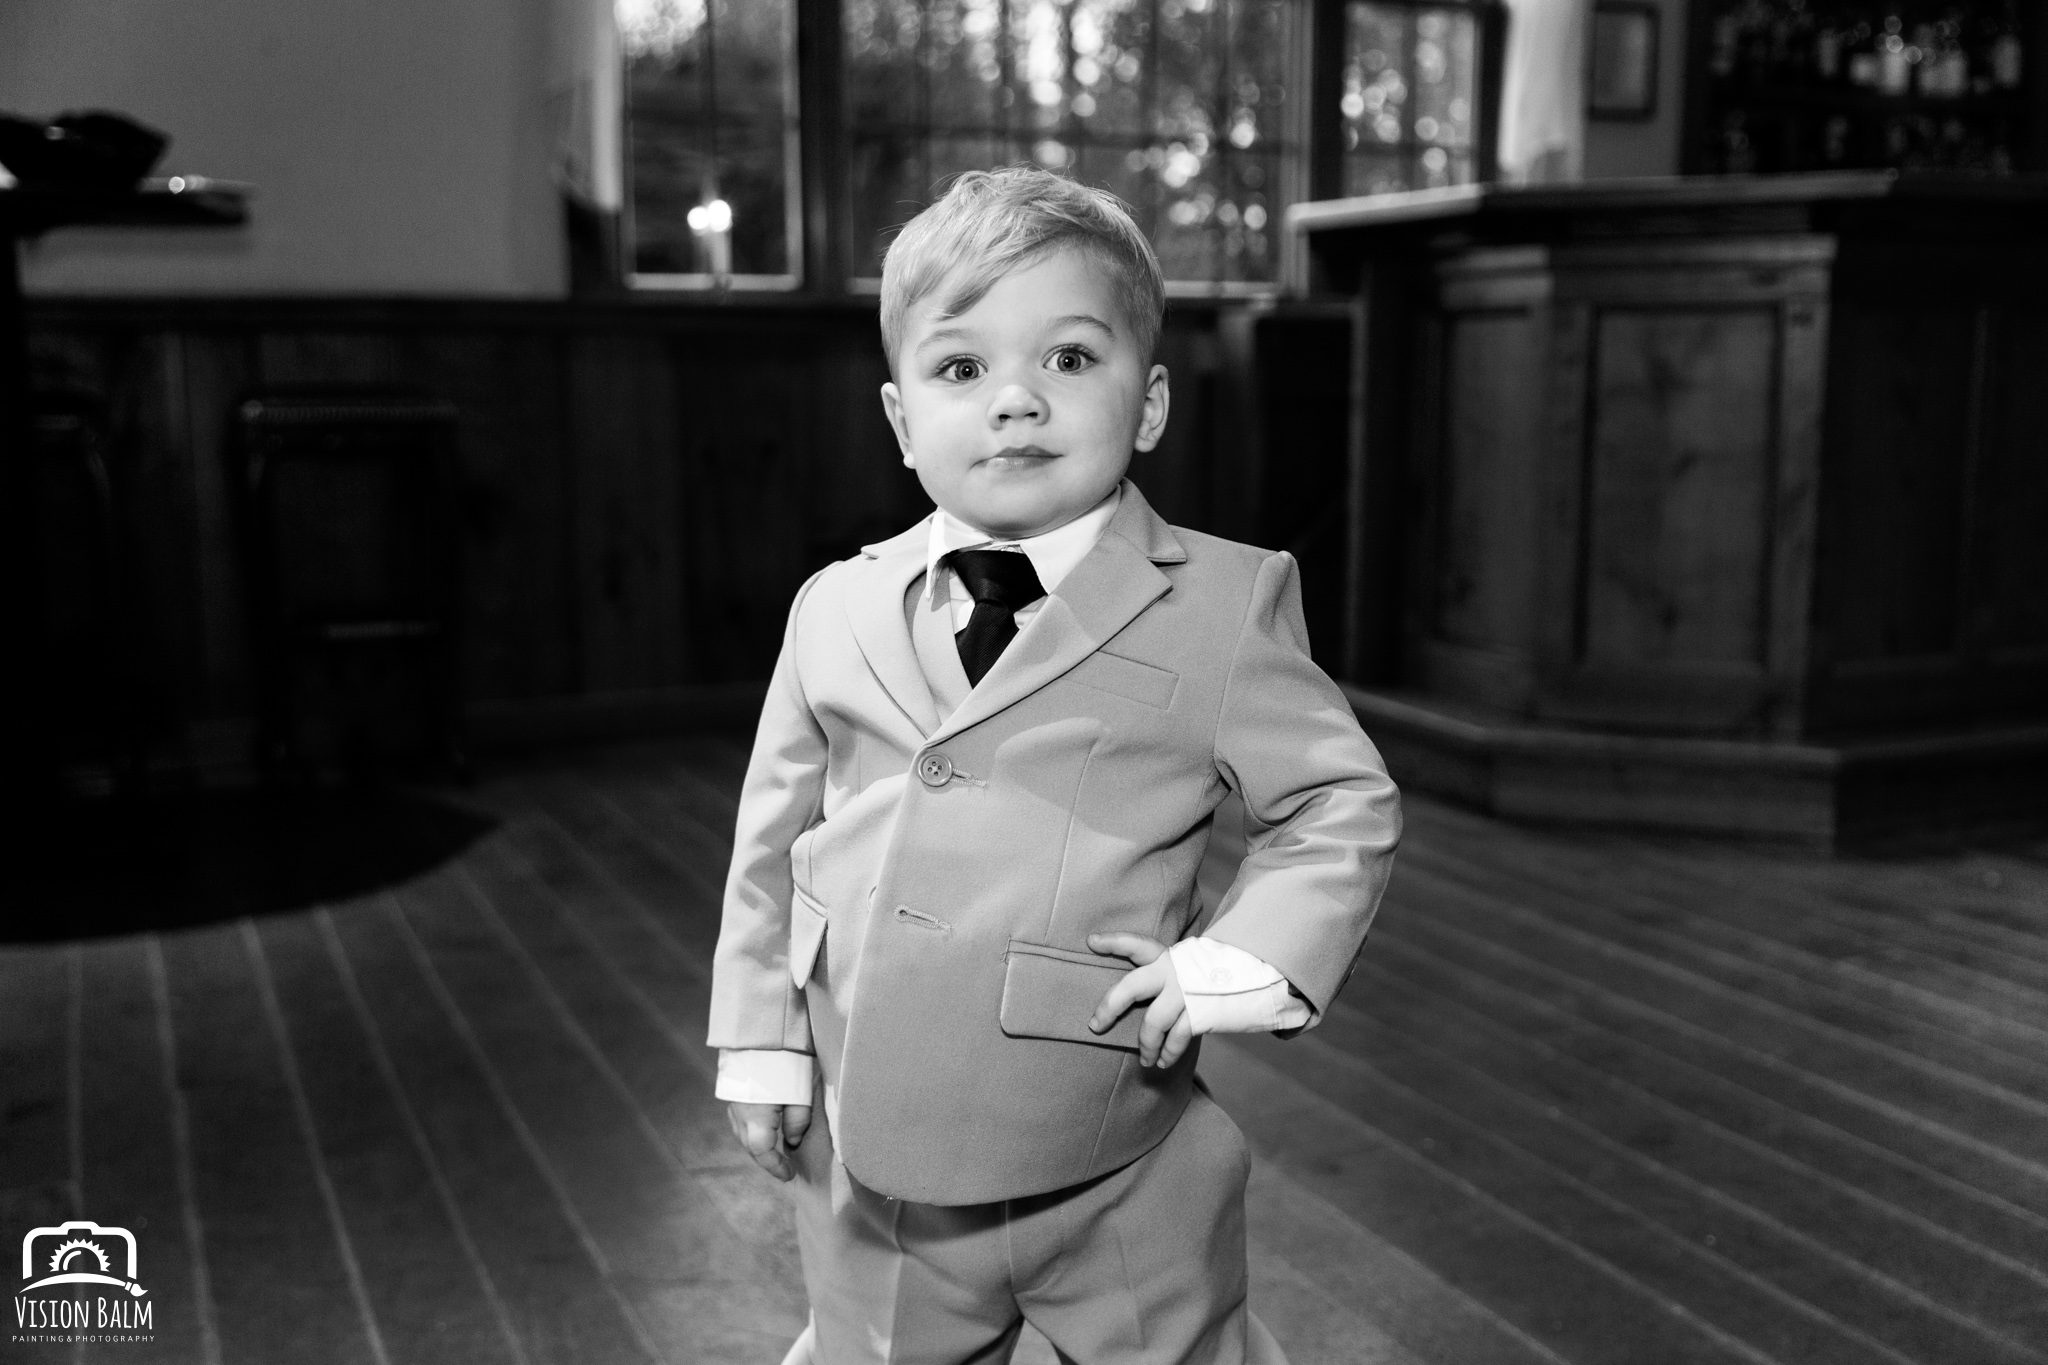 Wedding photo of bride's son in a suite posing for the camera in Zuka's Hilltop Barn by Vision Balm in Charleston, SC.